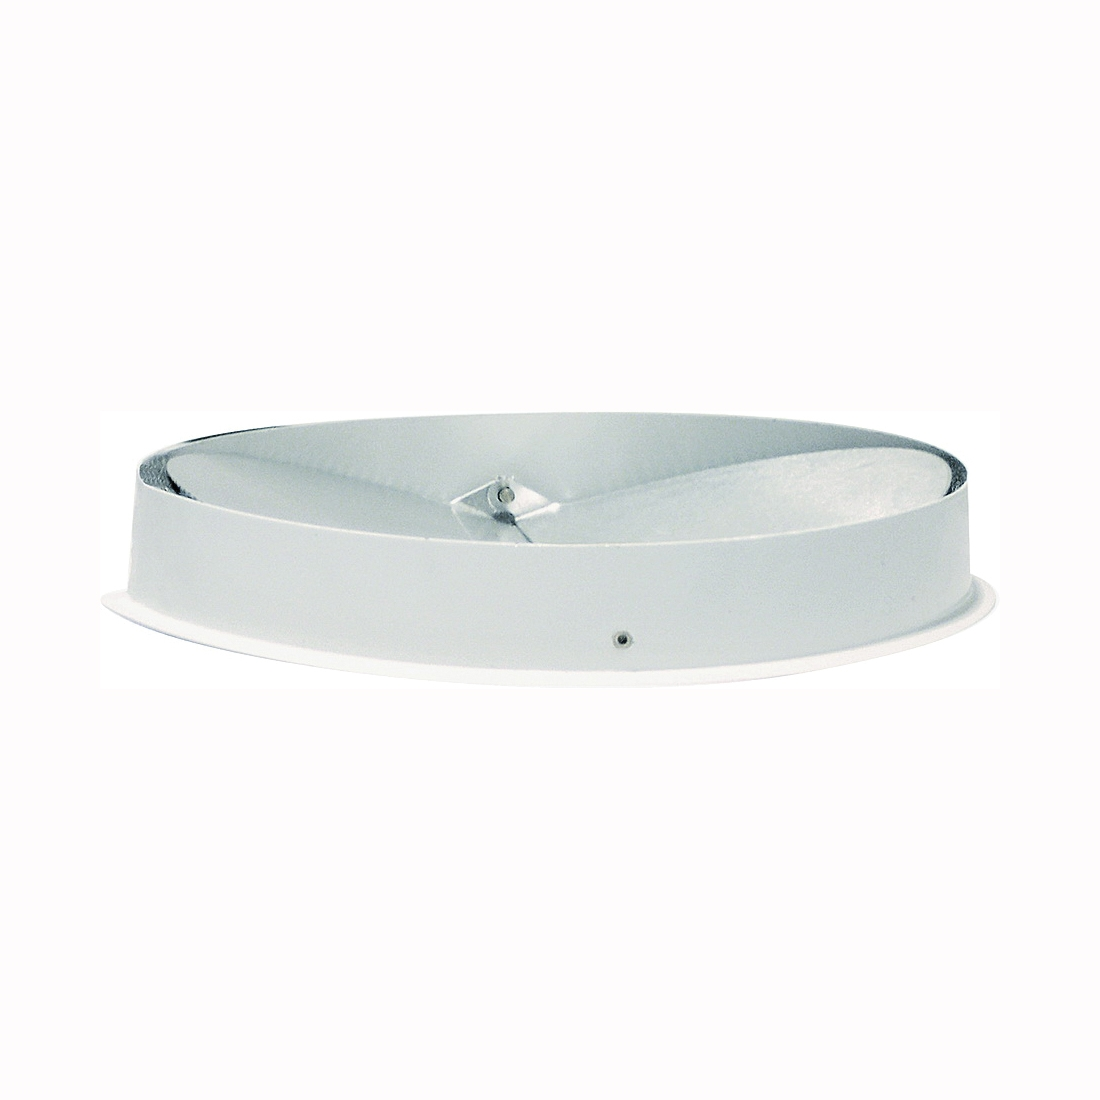 Picture of Air King ARD7R/E-22A Range Hood Collar, Round, Steel, Painted, For: QZ, DS and AV Series Range Hoods